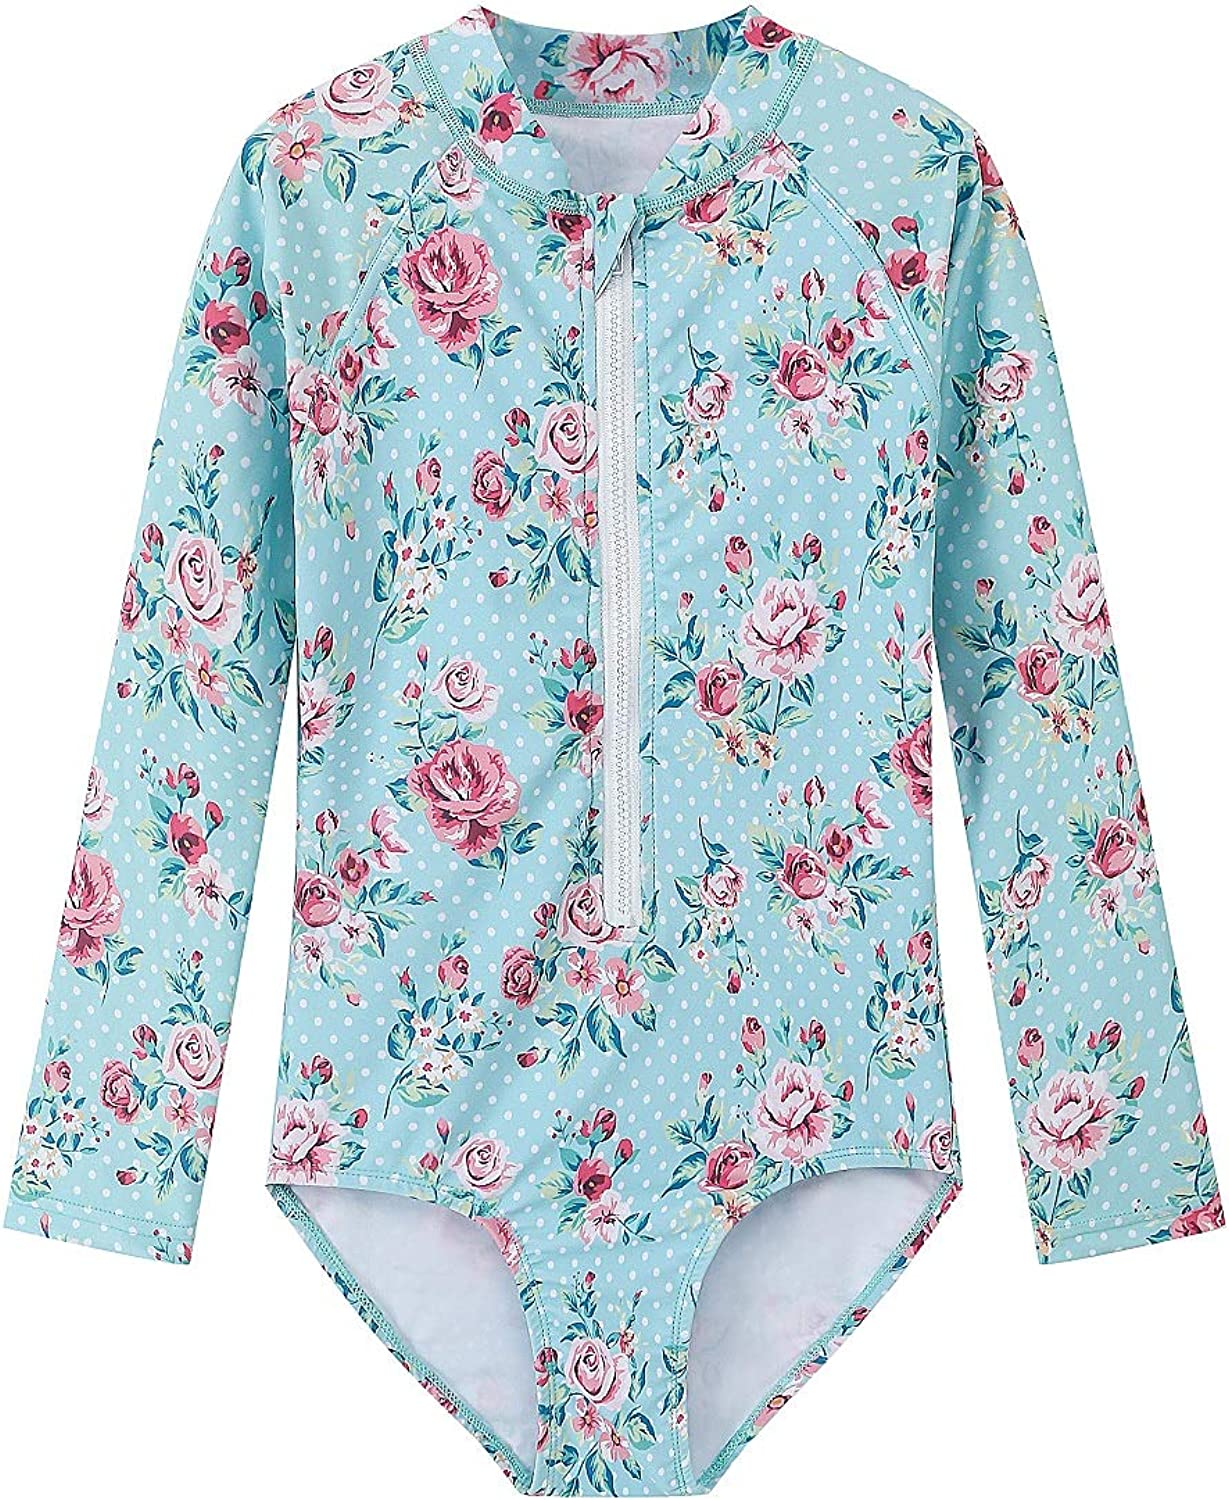 MADCAP Special Campaign Girls Long Sleeve Rash Guard One Piece S Now free shipping Swimsuit Bathing